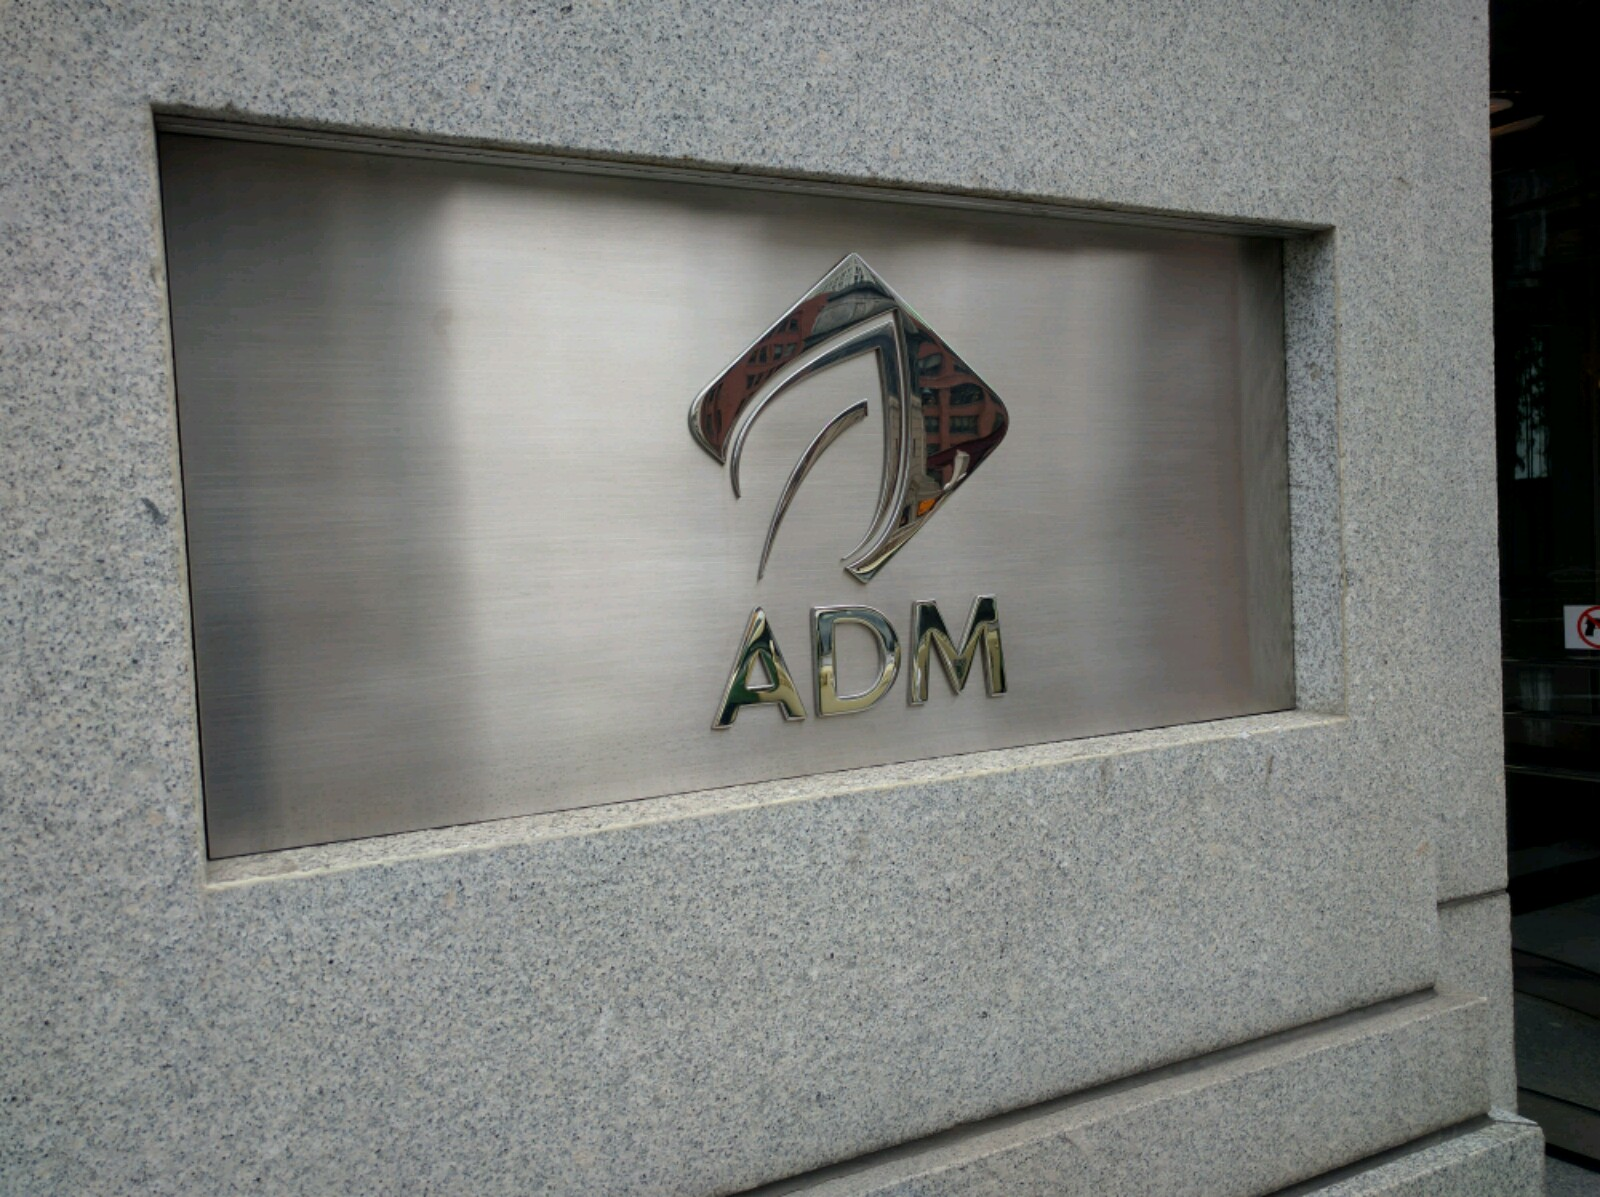 Entrance to ADM's corporate headquarters in downtown Chicago, Illinois.